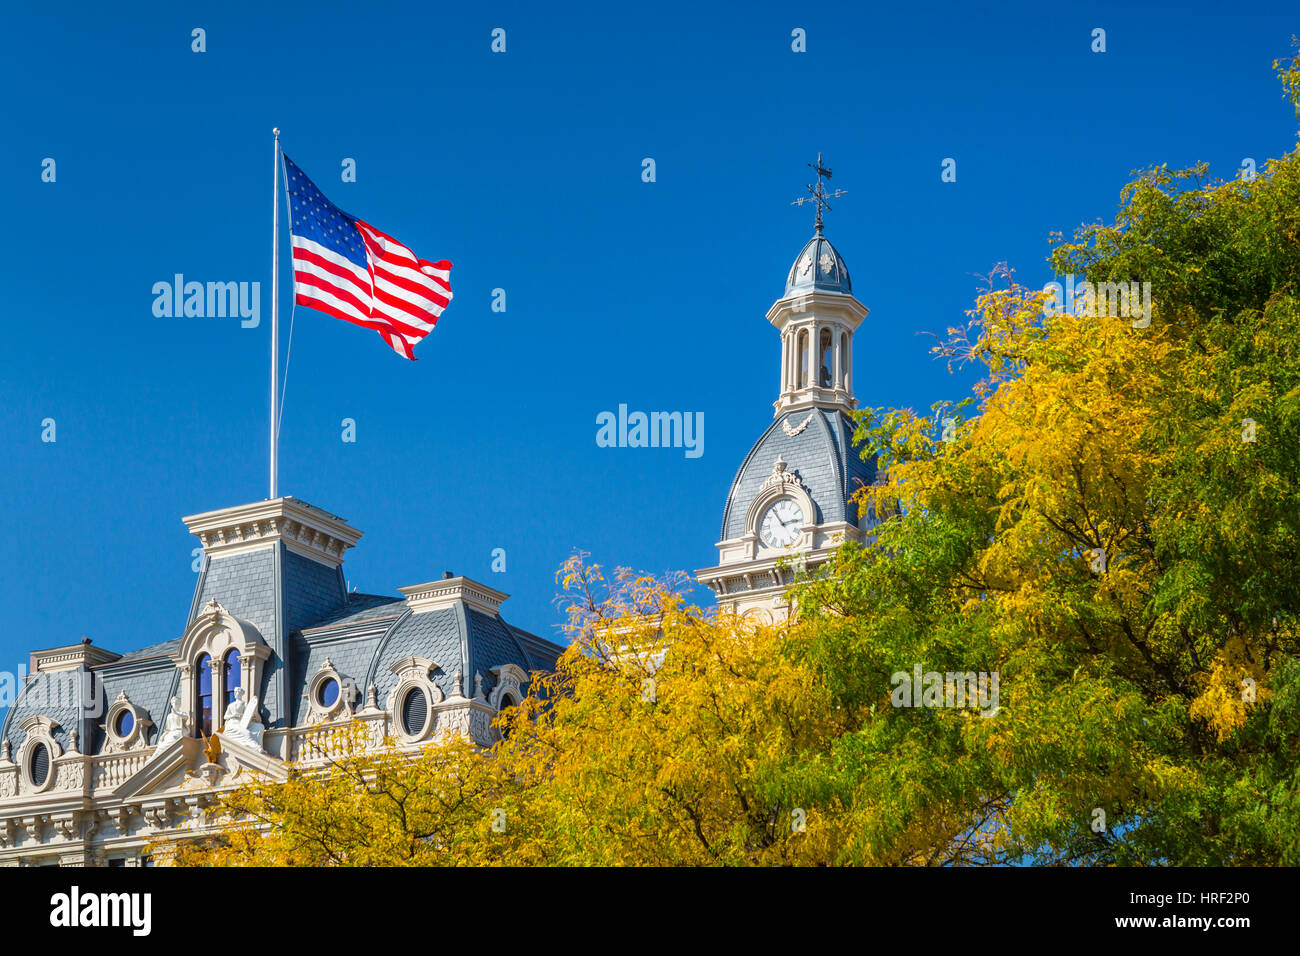 The American flag flying above the Wayne County Courthouse in Wooster, Ohio, USA. - Stock Image